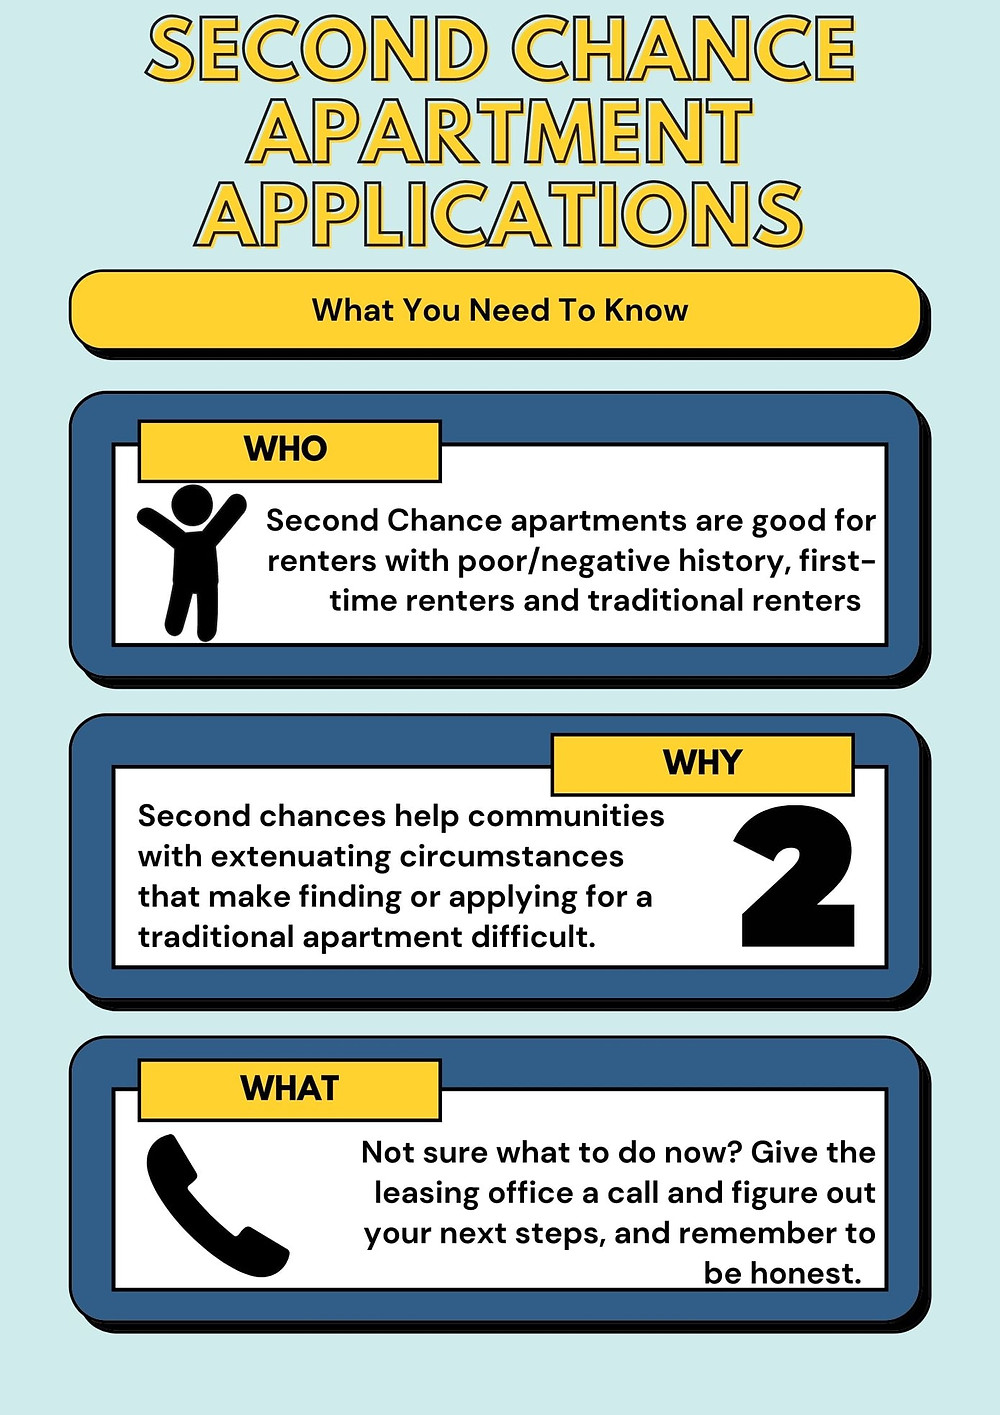 Second Chance Apartment Applications - Infographic